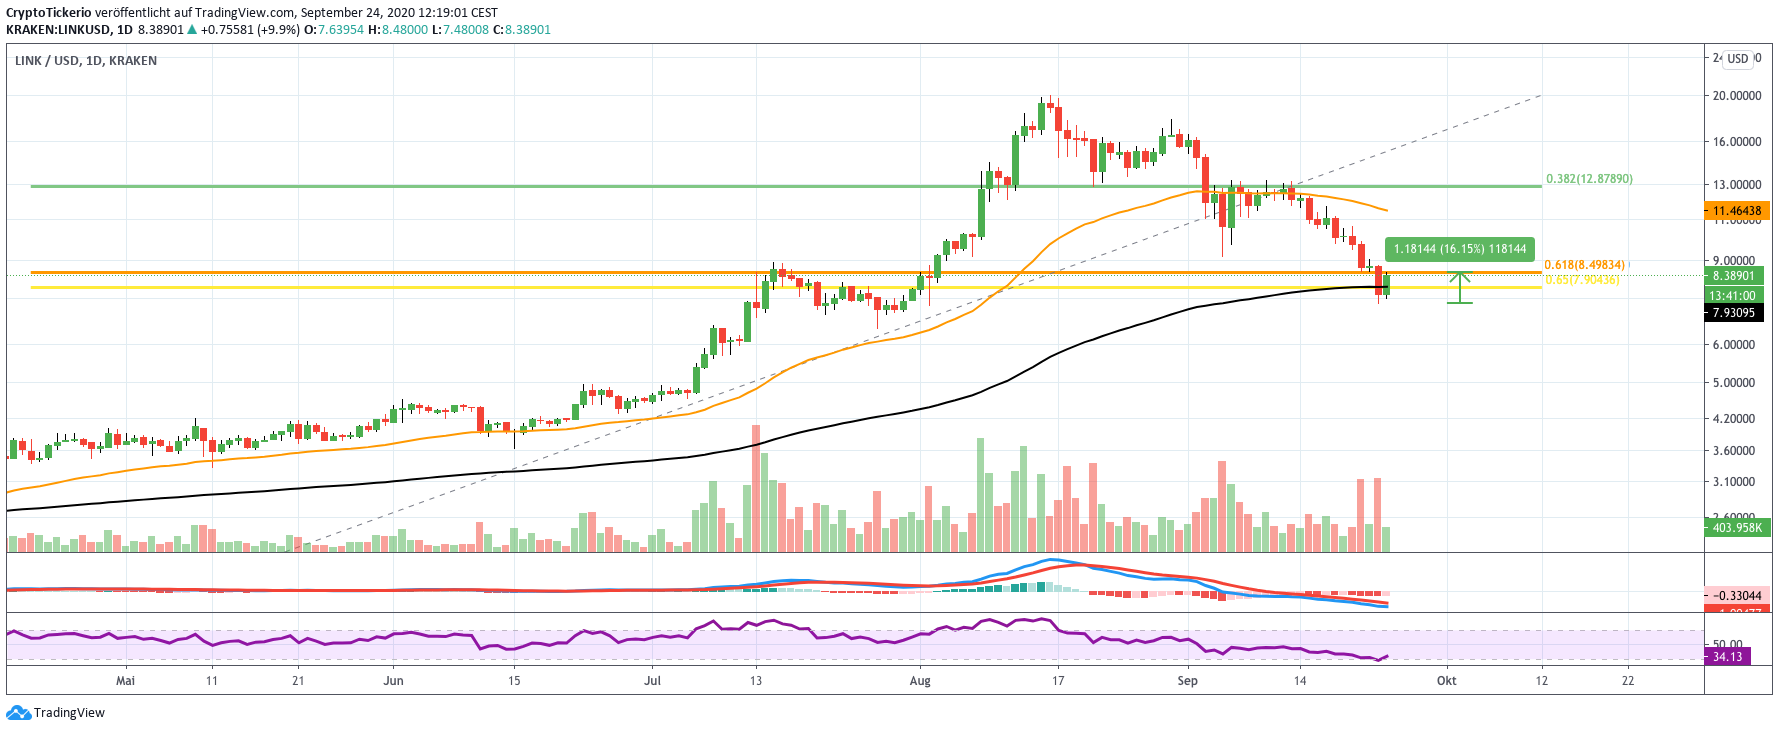 LINK/USD daily price chart analysis